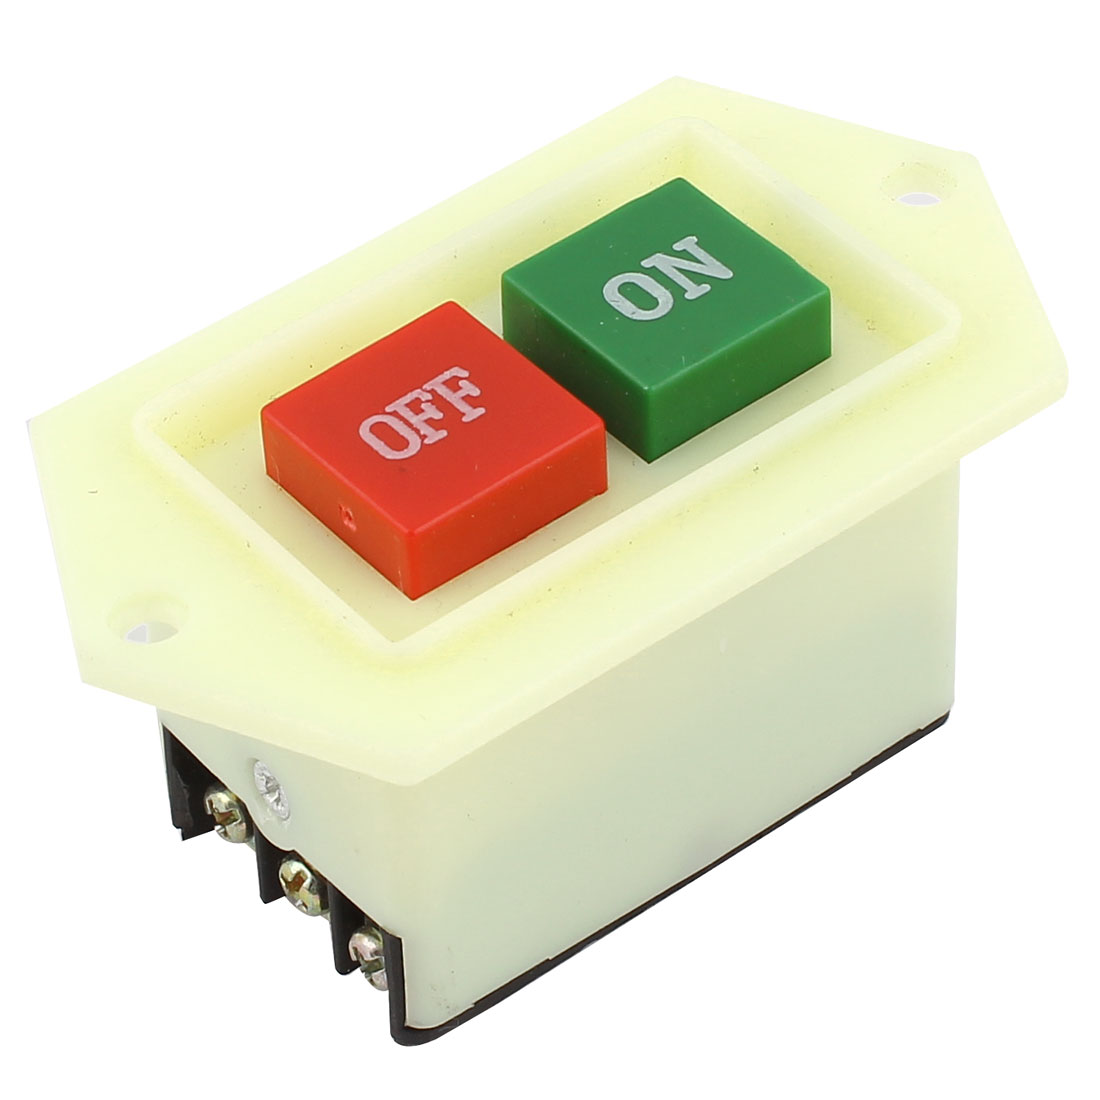 3PST 3 Phase ON OFF Latching Switch AC 380V/220V 5A